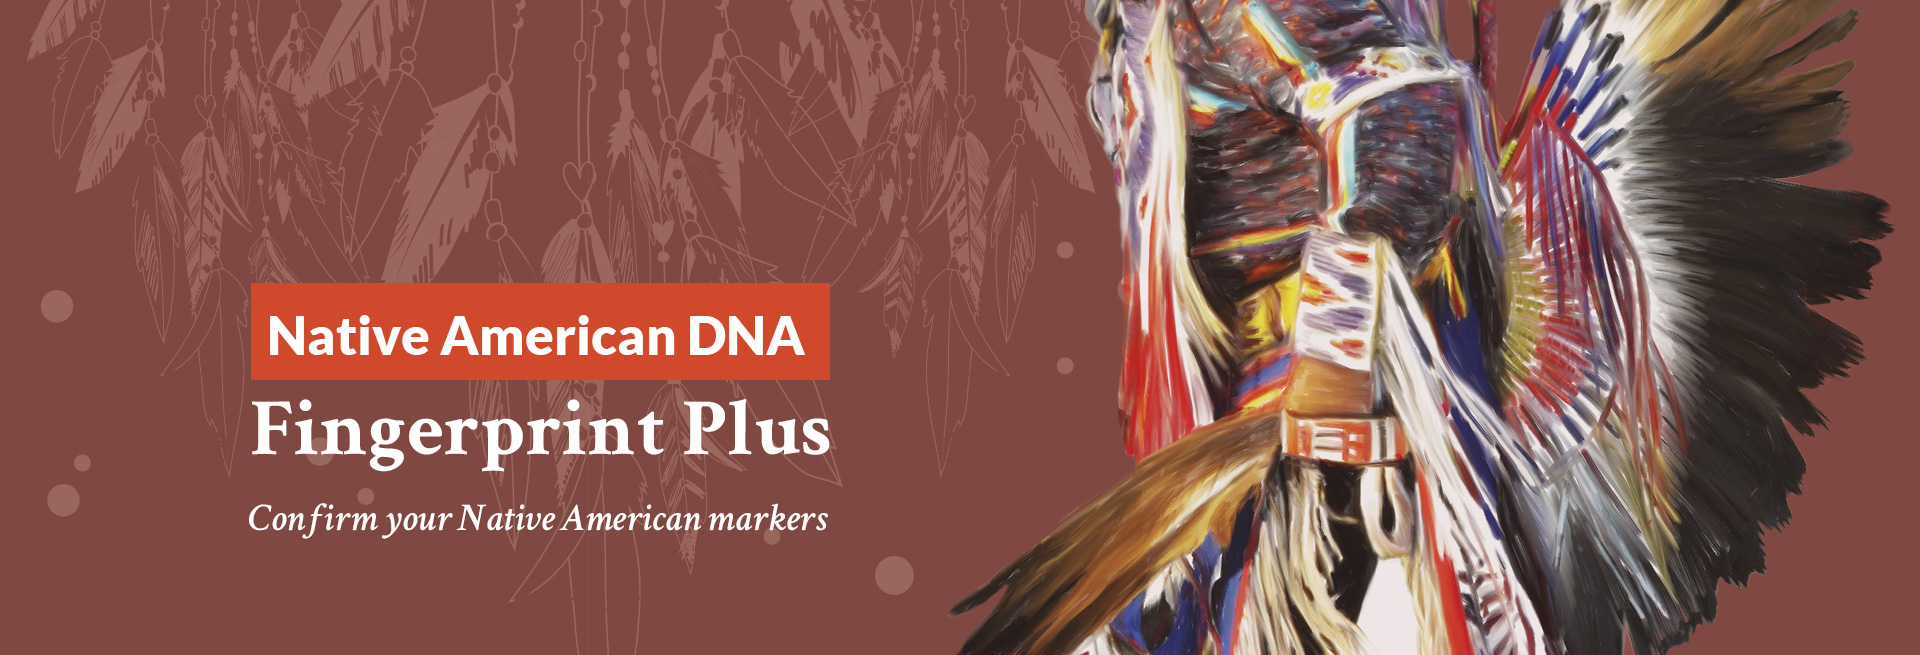 native american dna fingerprint test